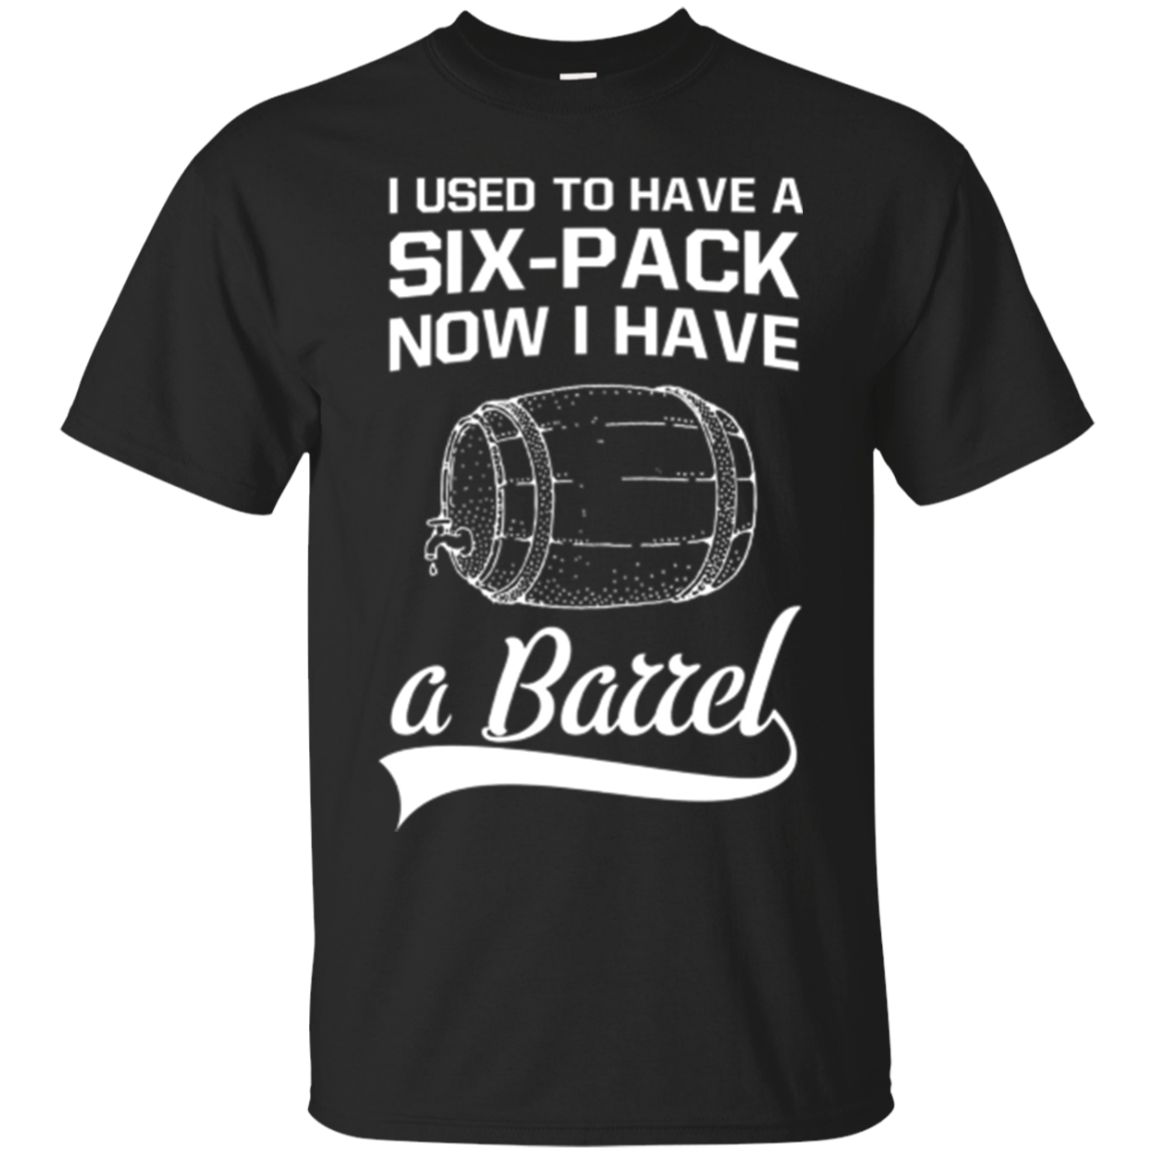 I Used To Have A Six-Pack Now I Have A Barrel T-Shirt